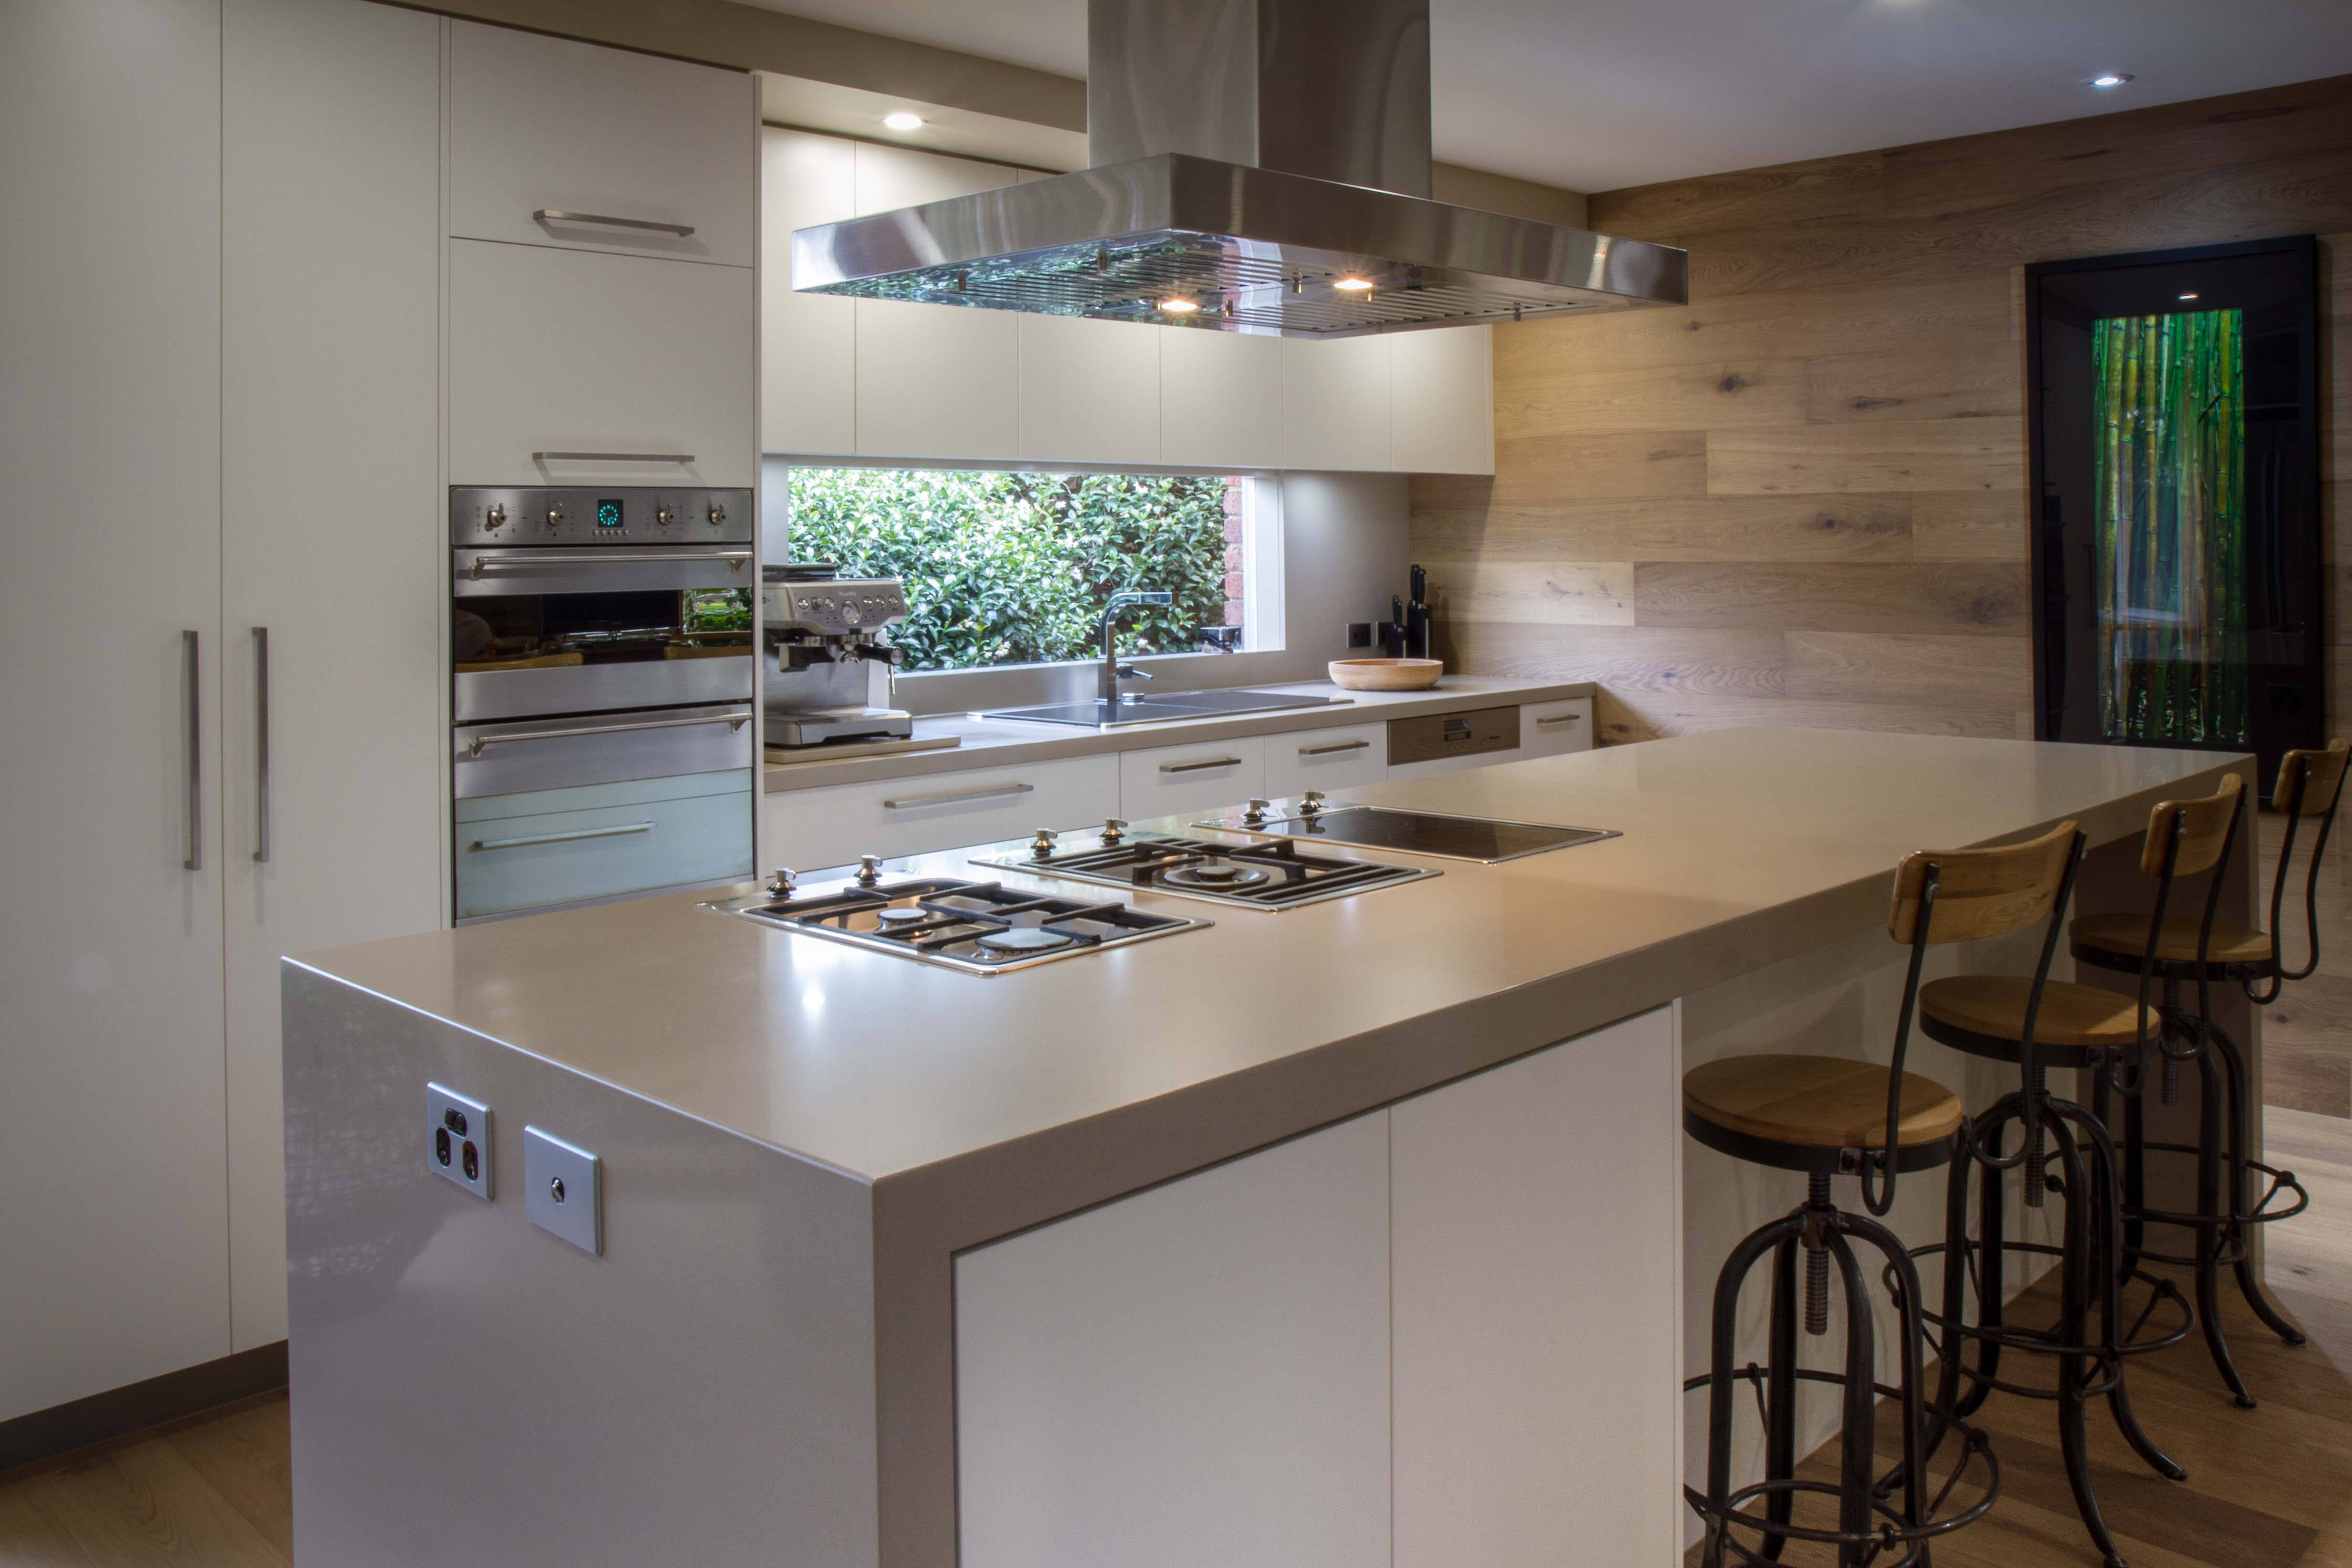 Caesarstone Countertops Guide [Everything You Need to Know]